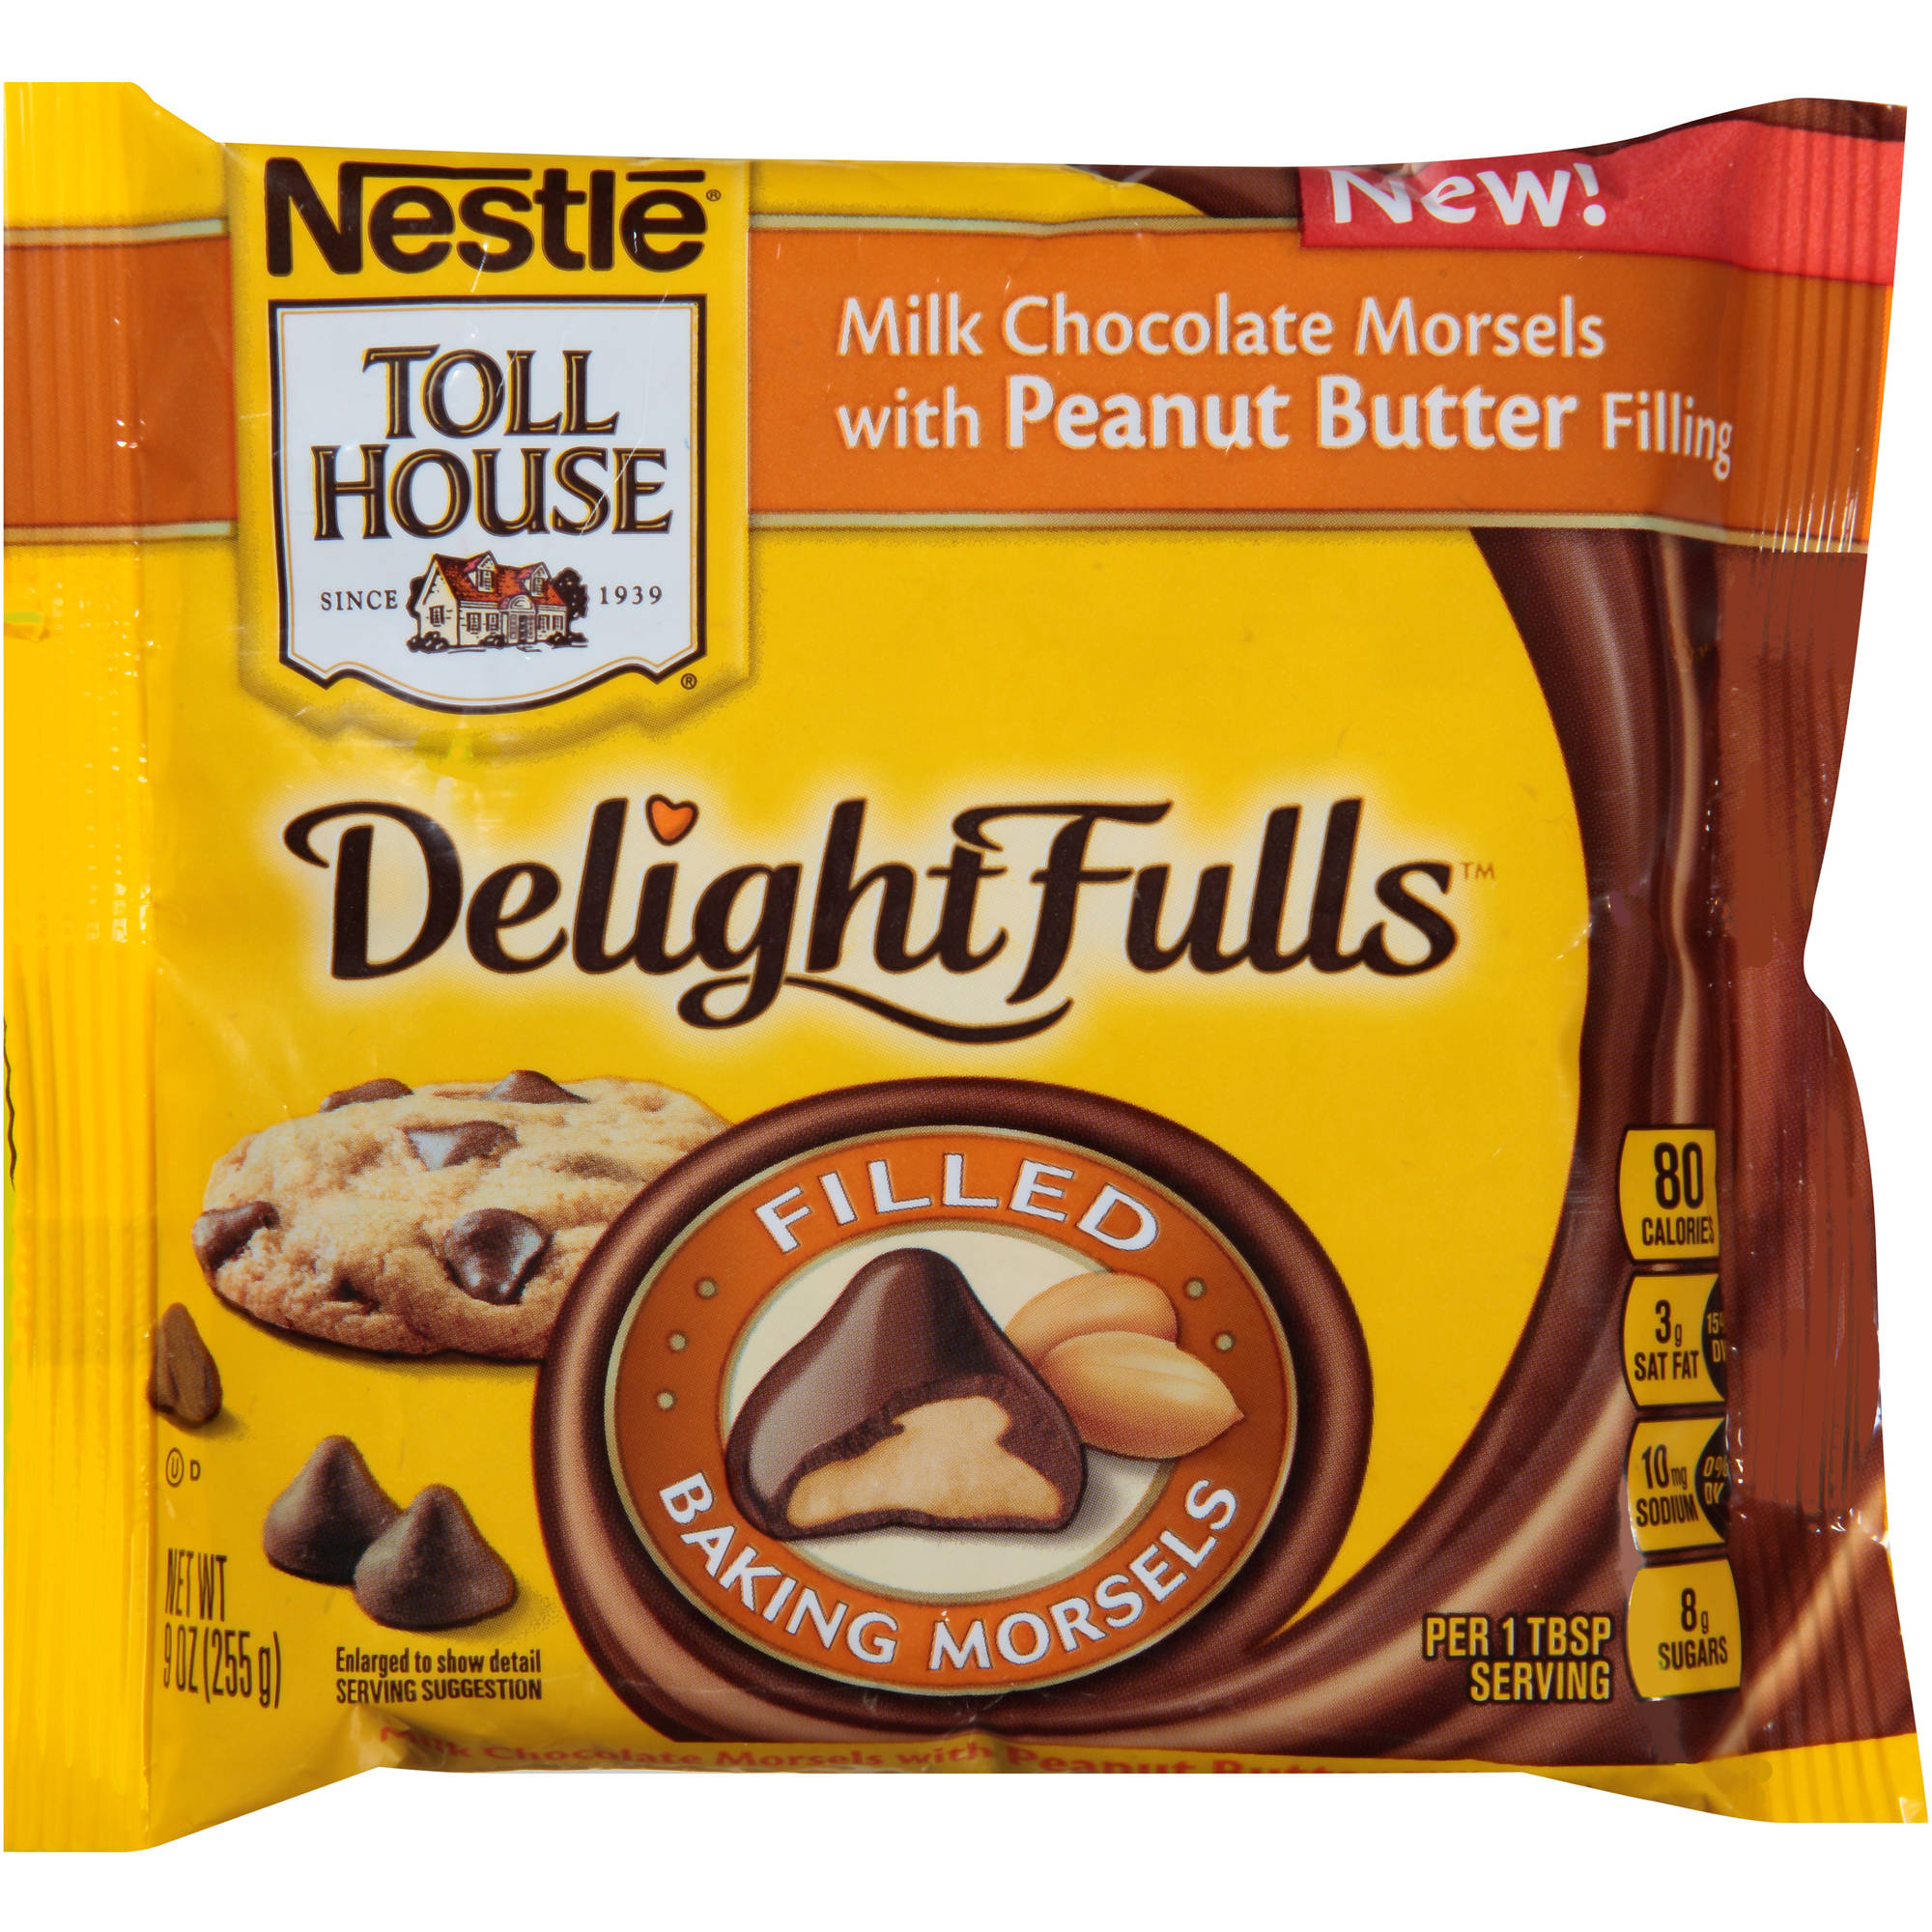 Nestle Toll House DelightFulls Milk Chocolate Morsels with Peanut Butter Filling, 9 oz